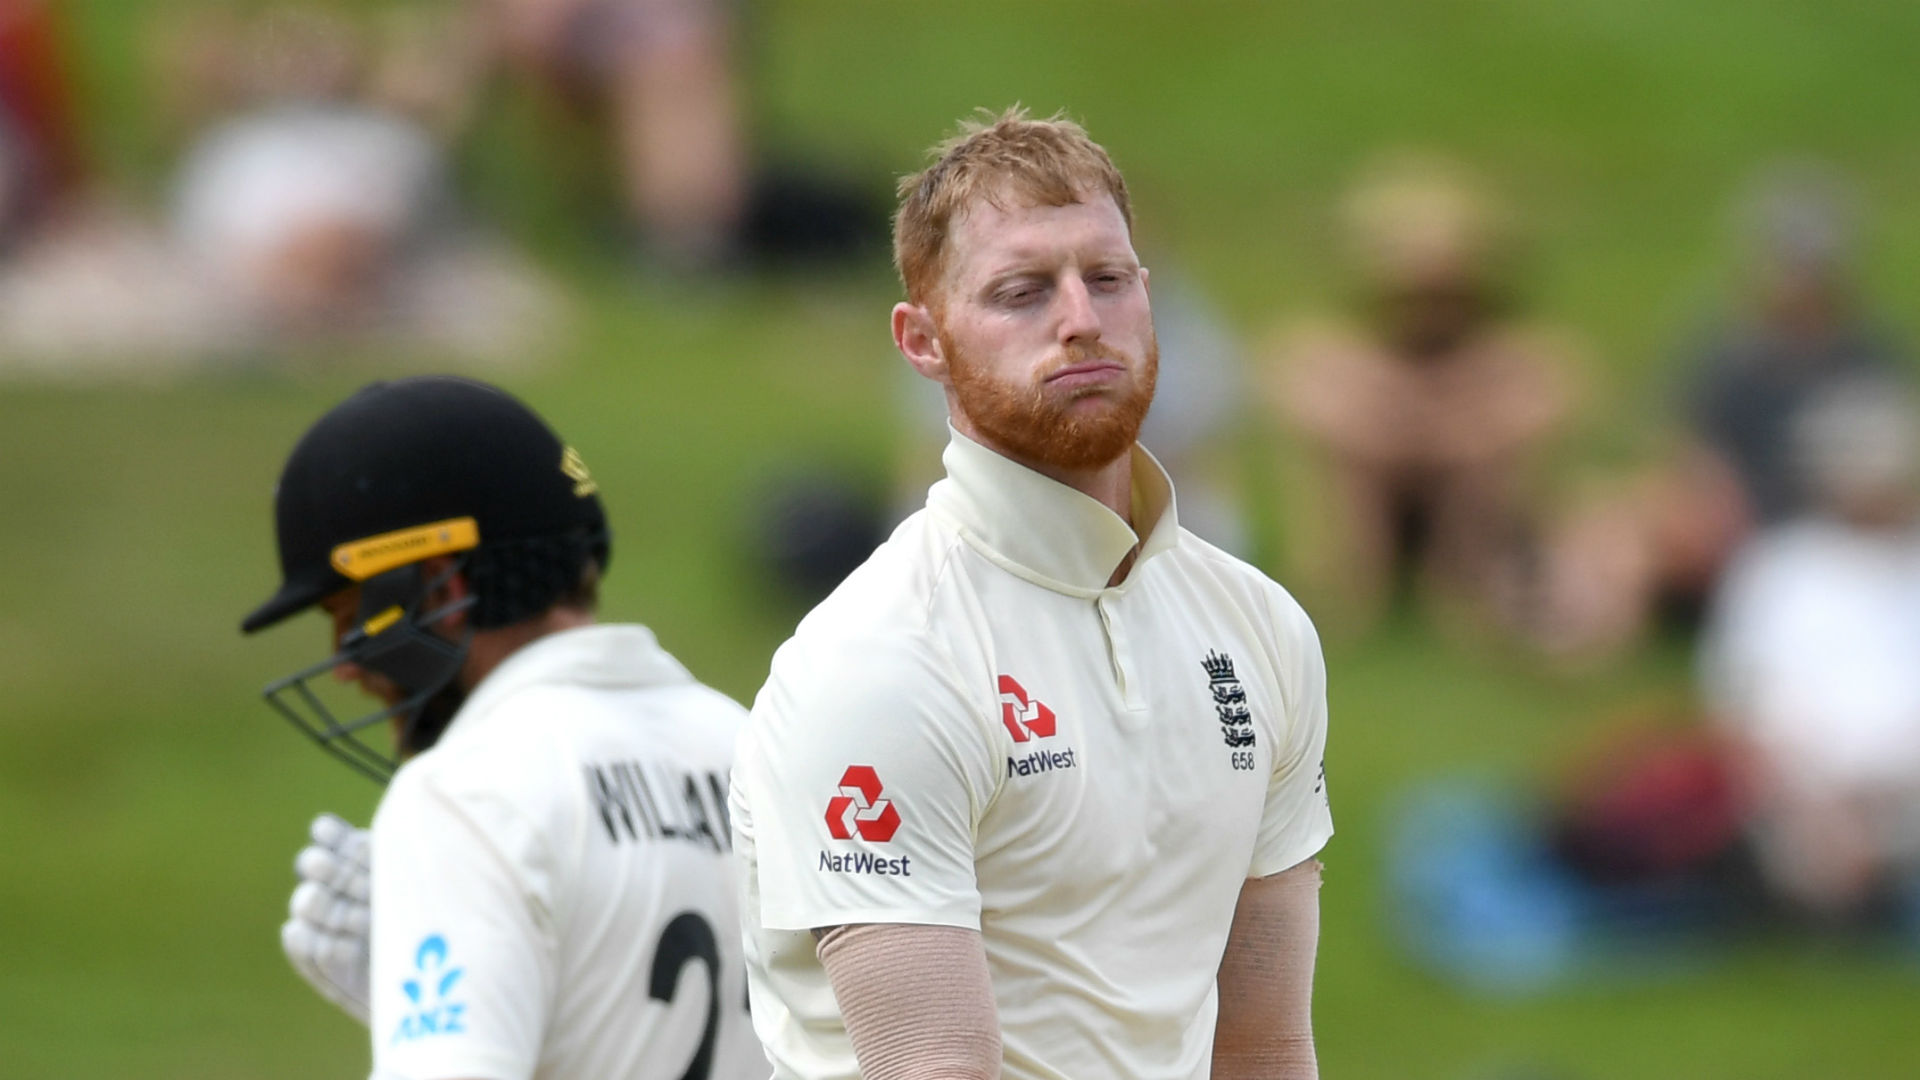 England will have Ben Stokes available to bowl in South Africa, and the all-rounder has backed captain Joe Root to maintain his strong form.